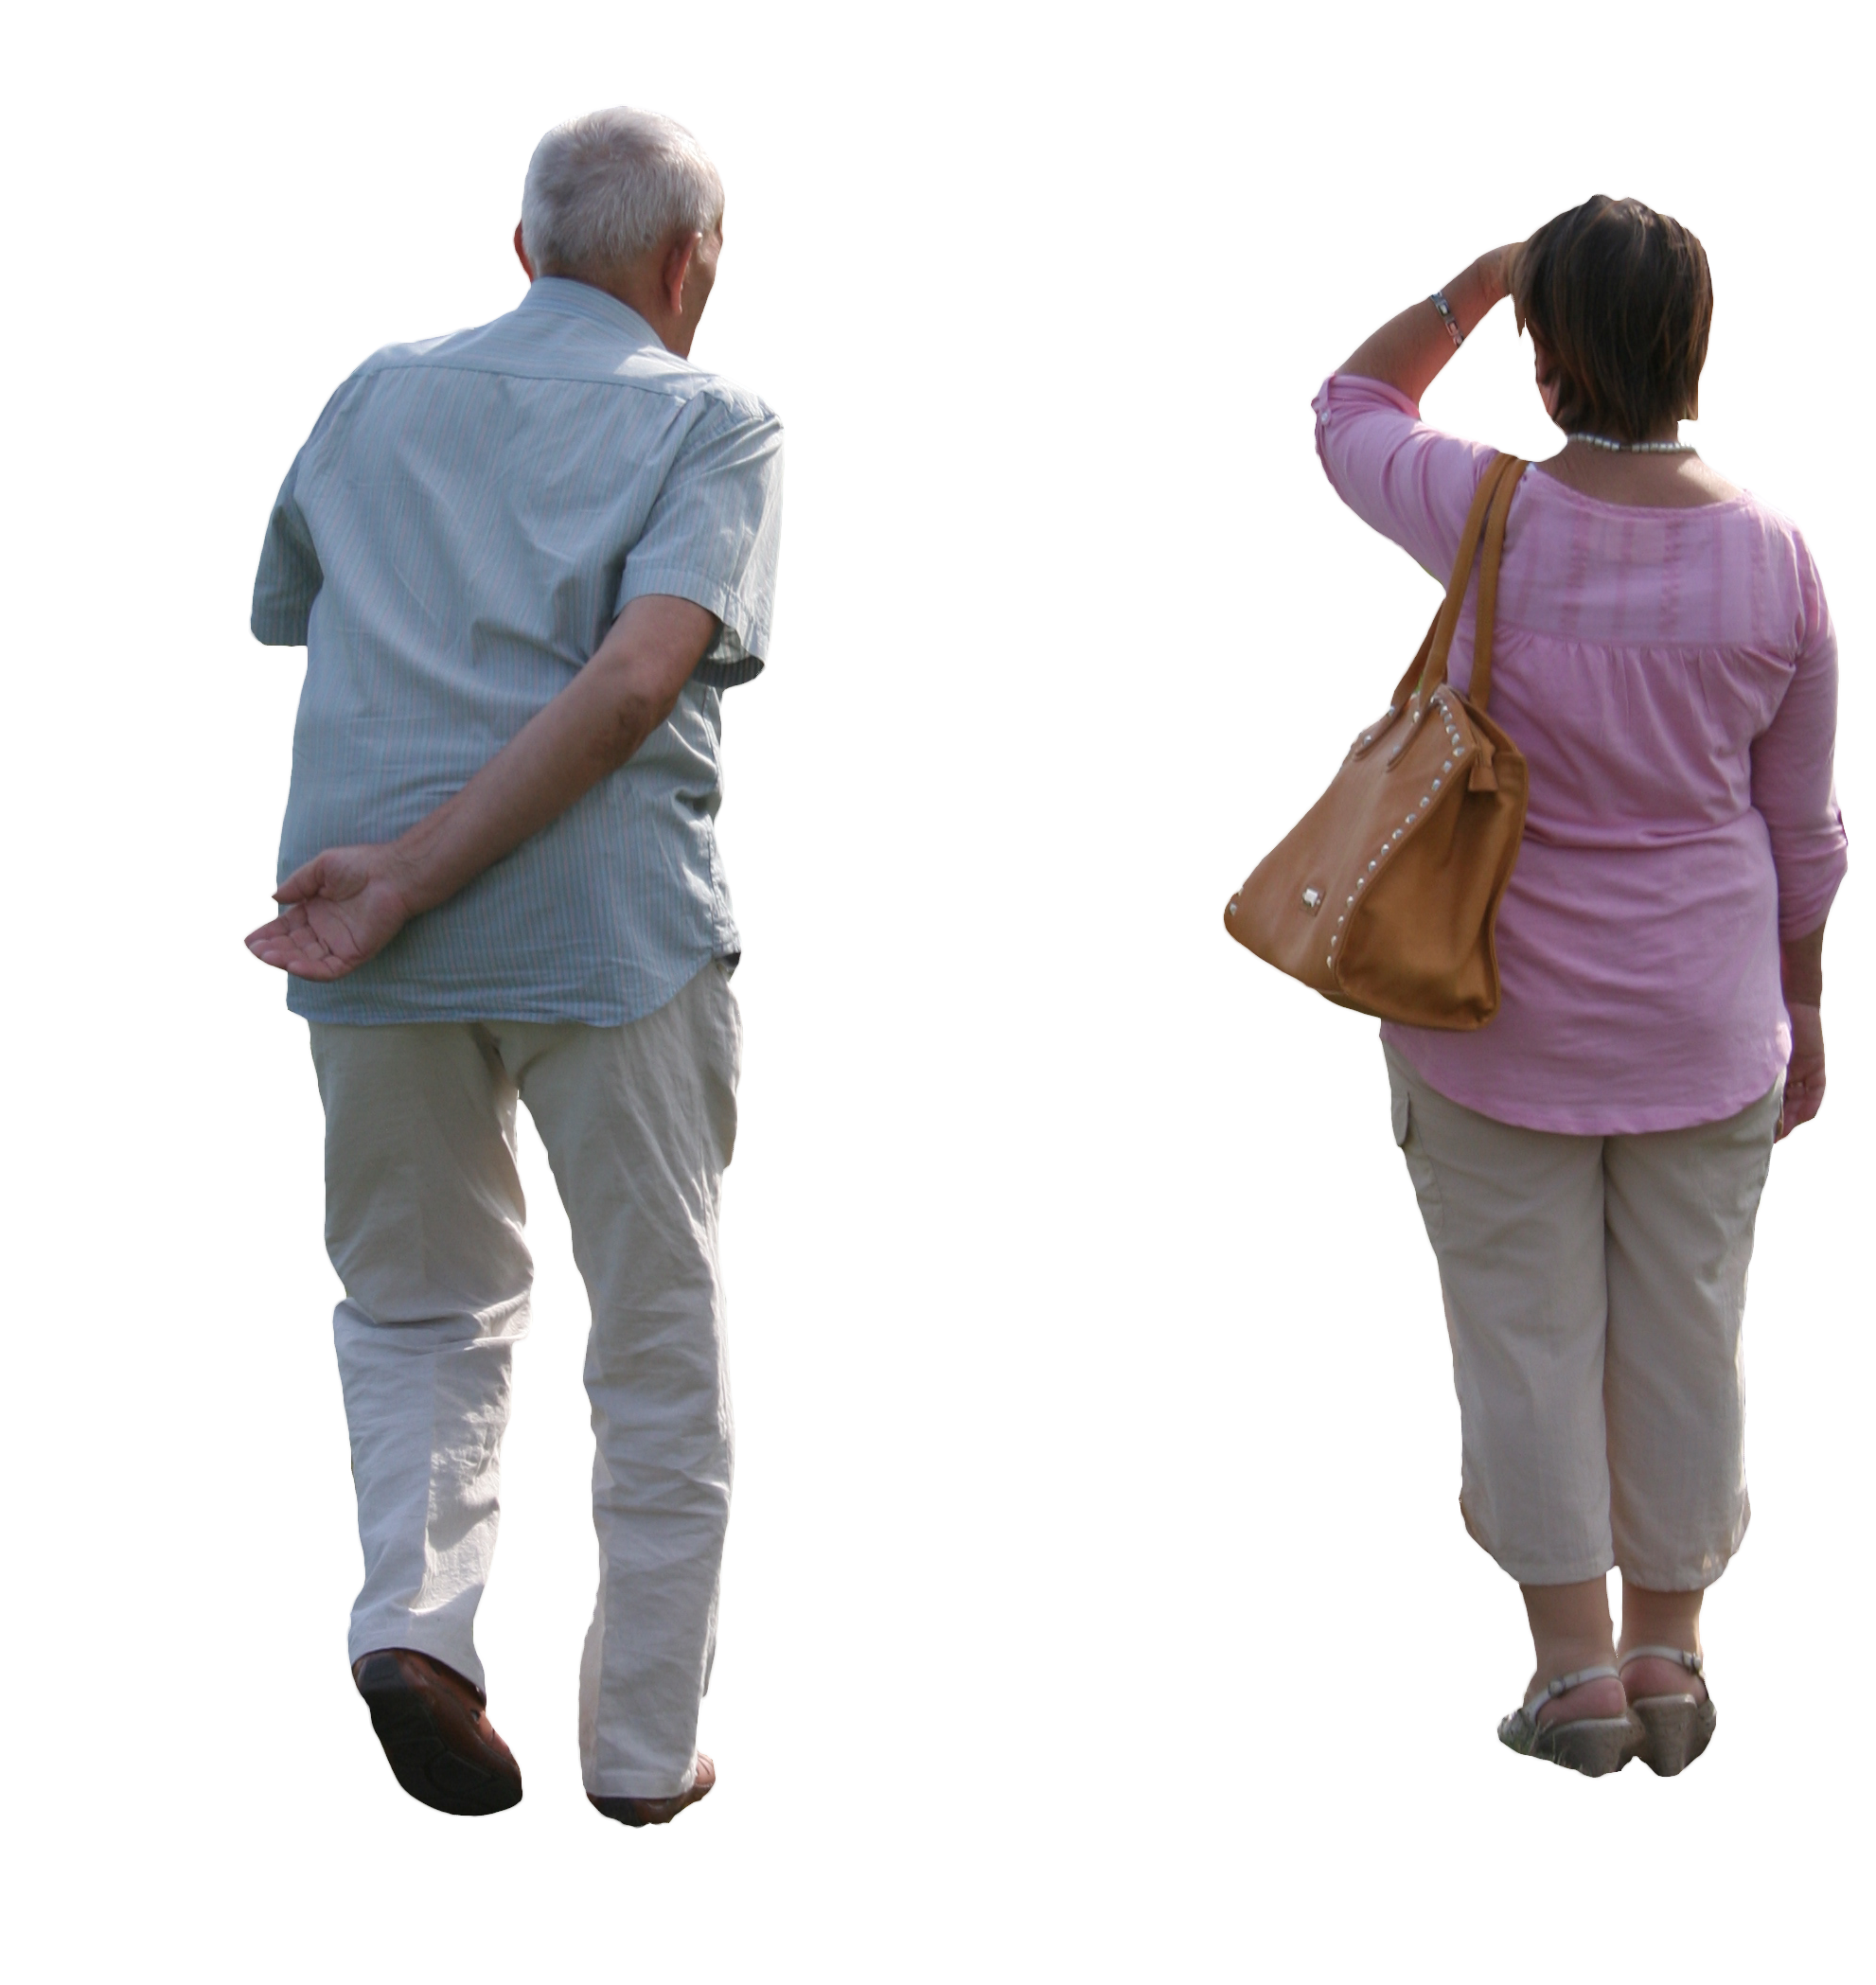 Elderly couple png. Old free cut out